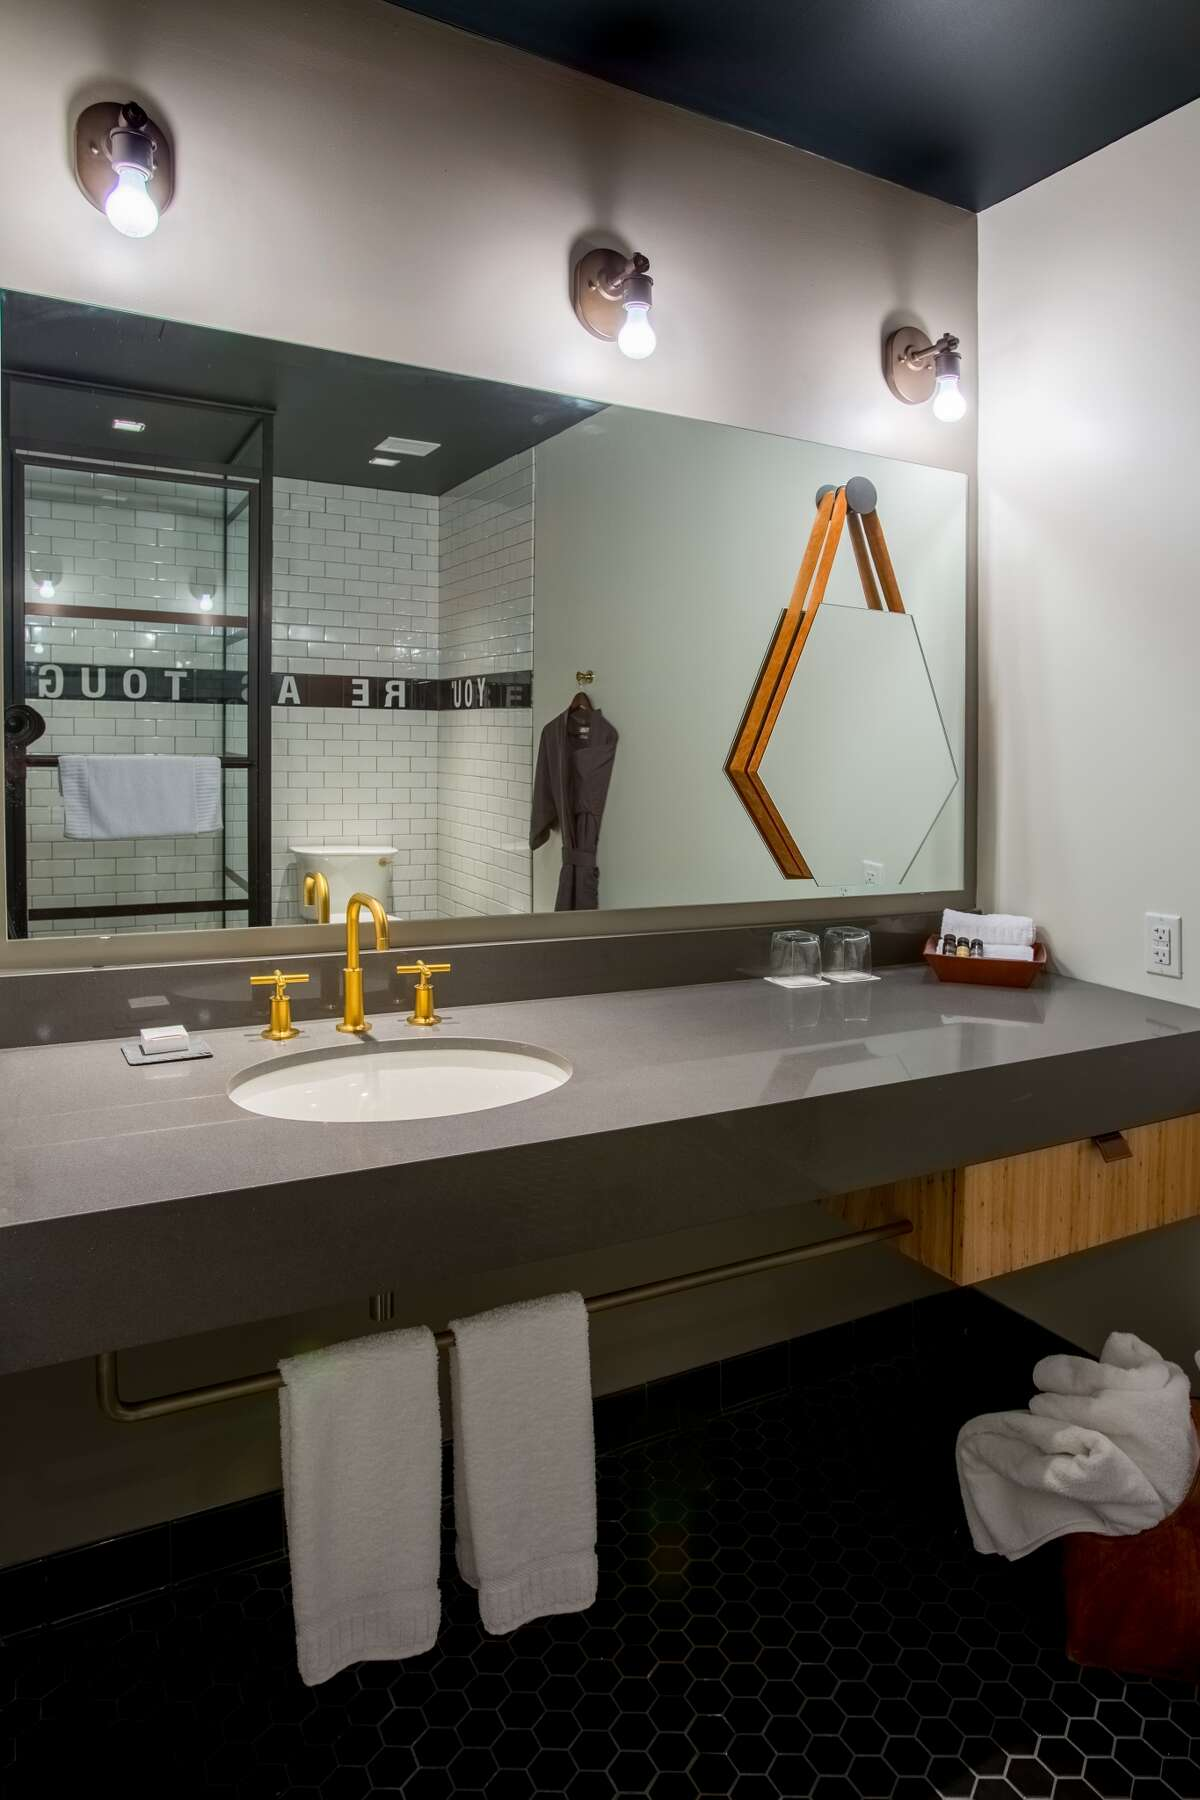 Refined rustic is the sense of style you'll find at The George boutique hotel under construction at Texas A&M University in College Station.